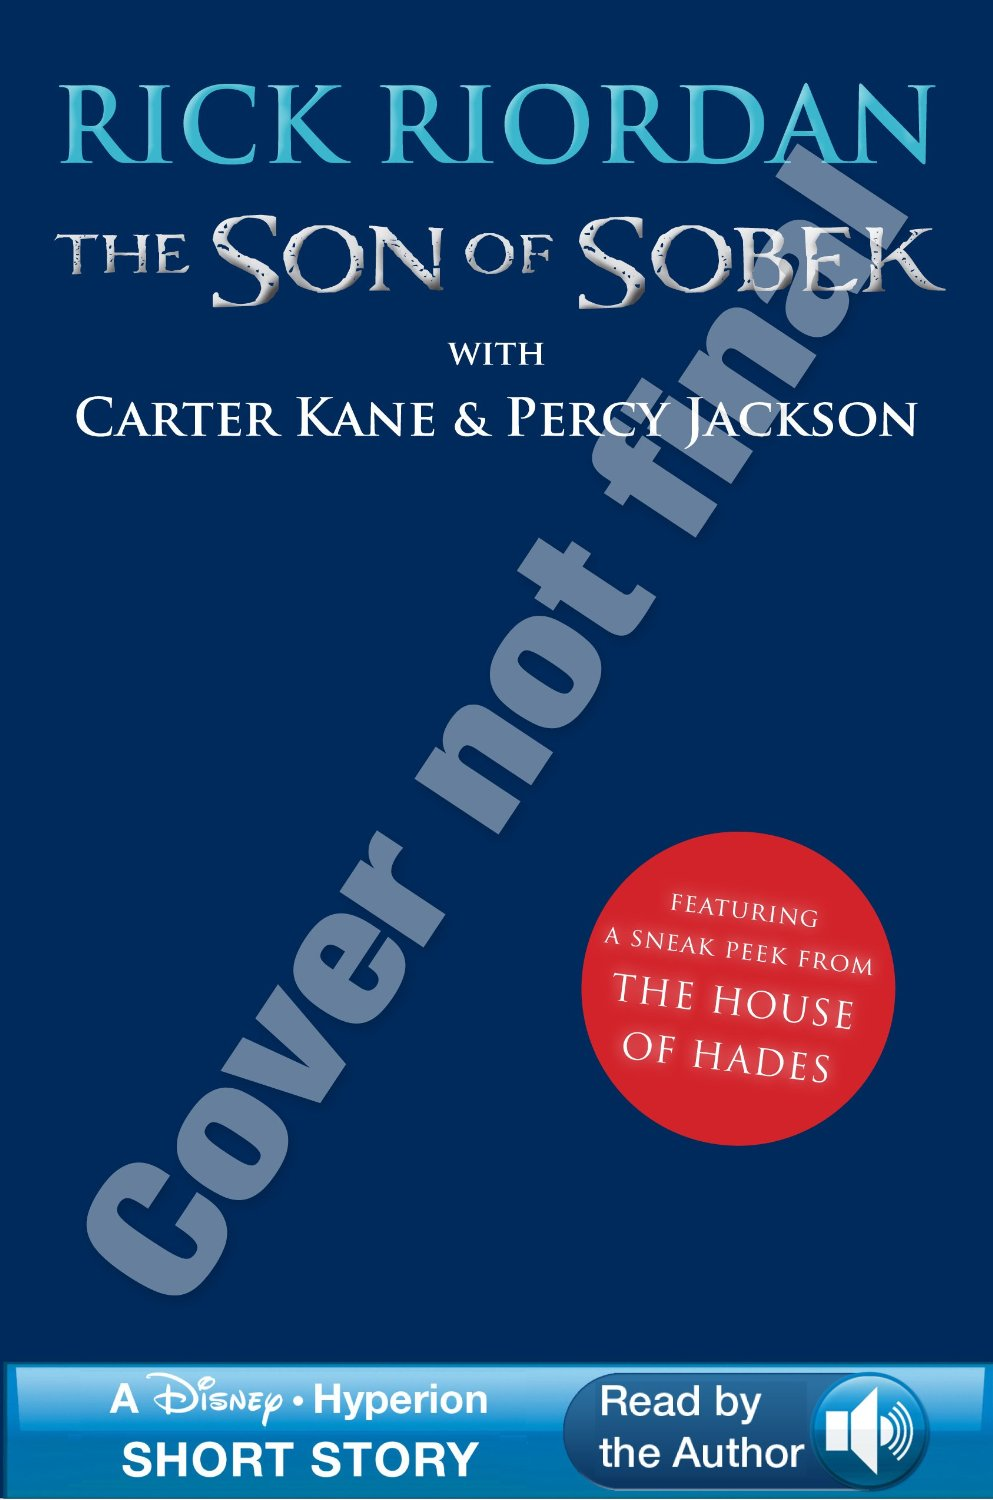 Portada no definitiva de The Son of Sobek